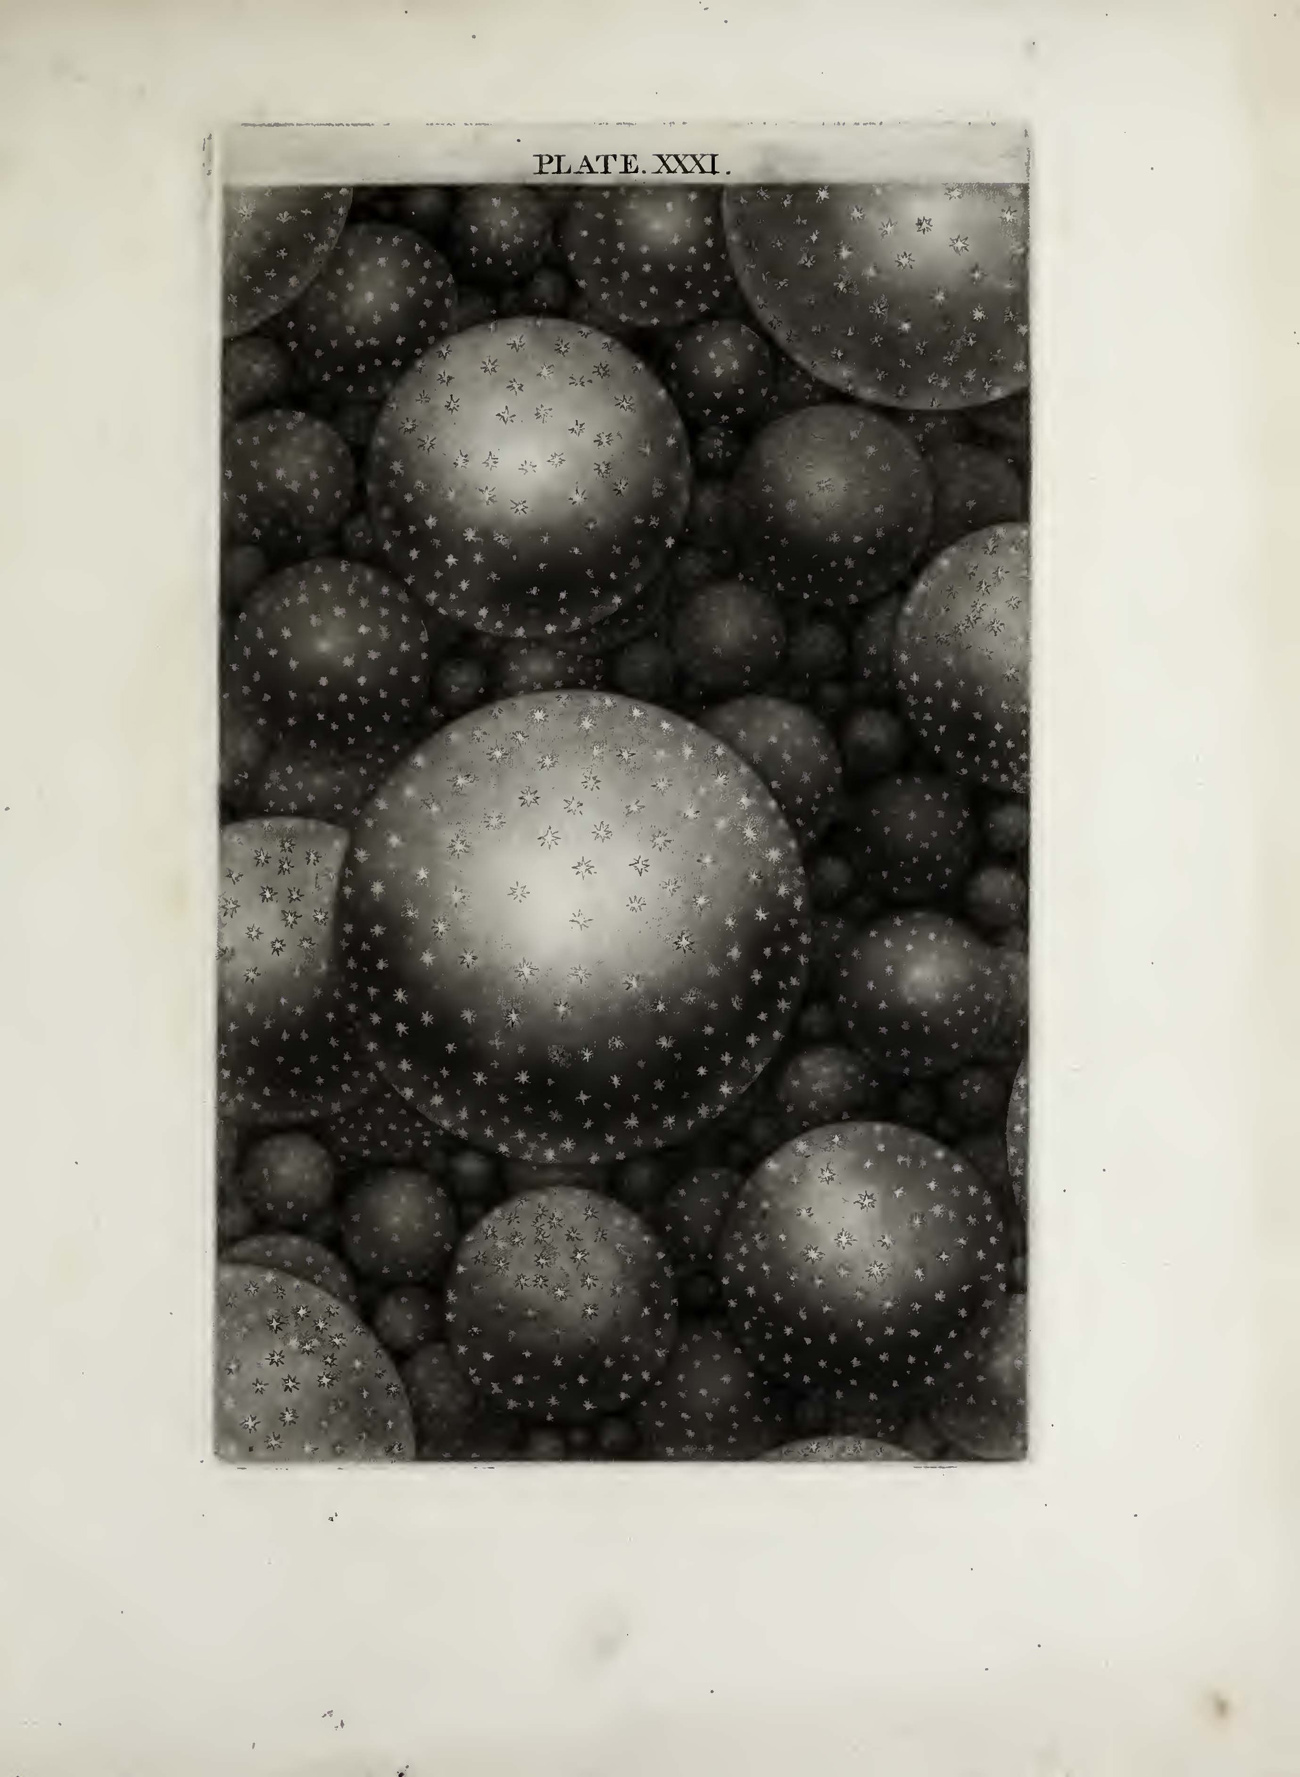 Many three dimensional spheres floating in black space